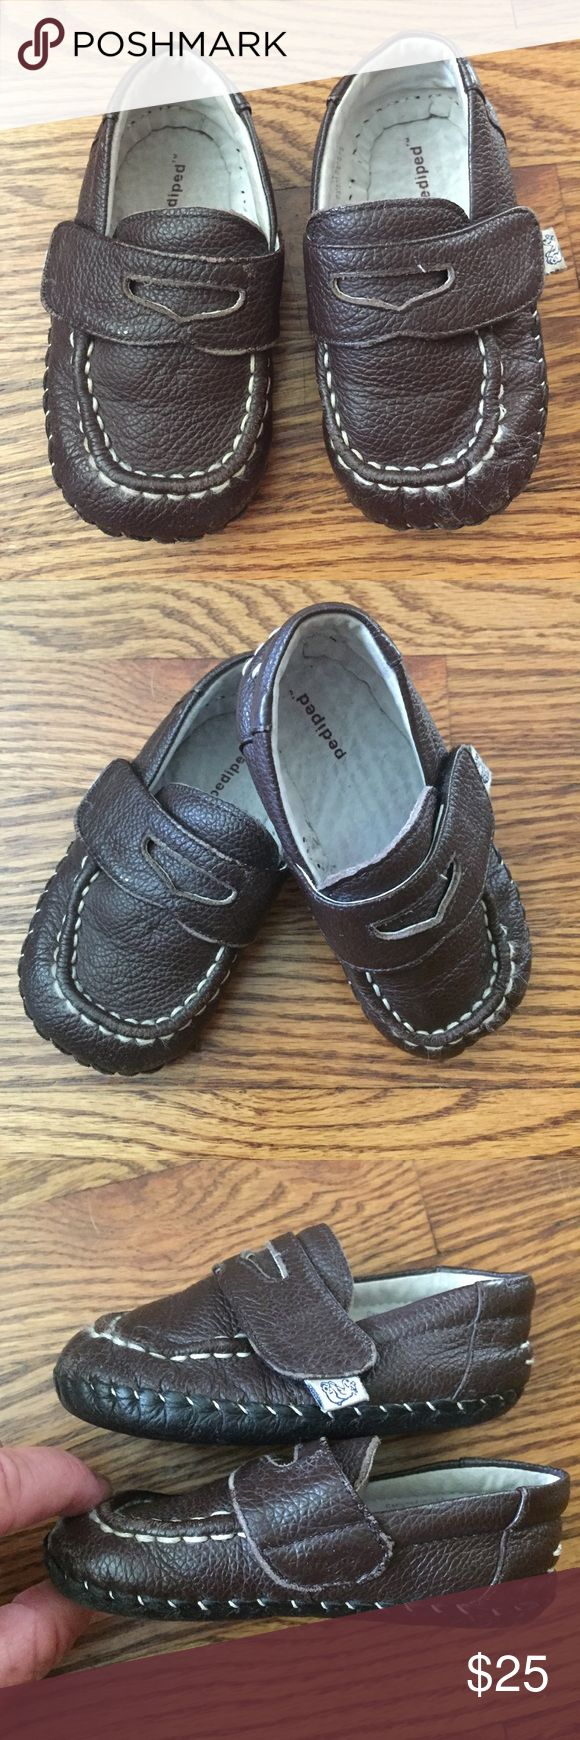 Pediped shoes...Size 12-18 Adorable shoes by Pediped with Velcro opening for easy on and off...chocolate brown with soft sole...Size 12-18 months...excellent condition from a smoke free home! pediped Shoes